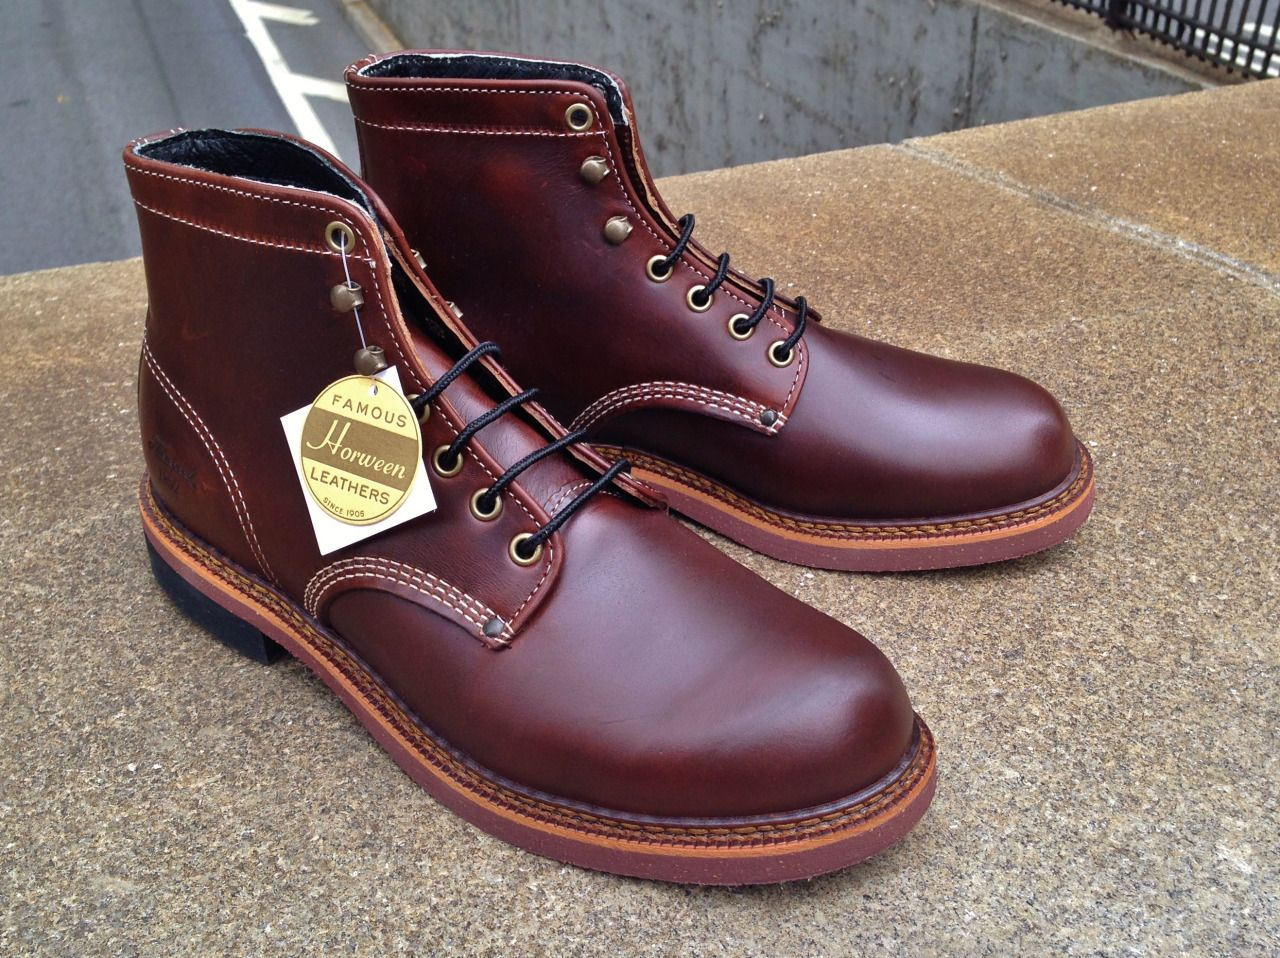 e2939166d02 mouldedshoe: Thorogood 1892 Boots in Horween... - The Old Pine ...